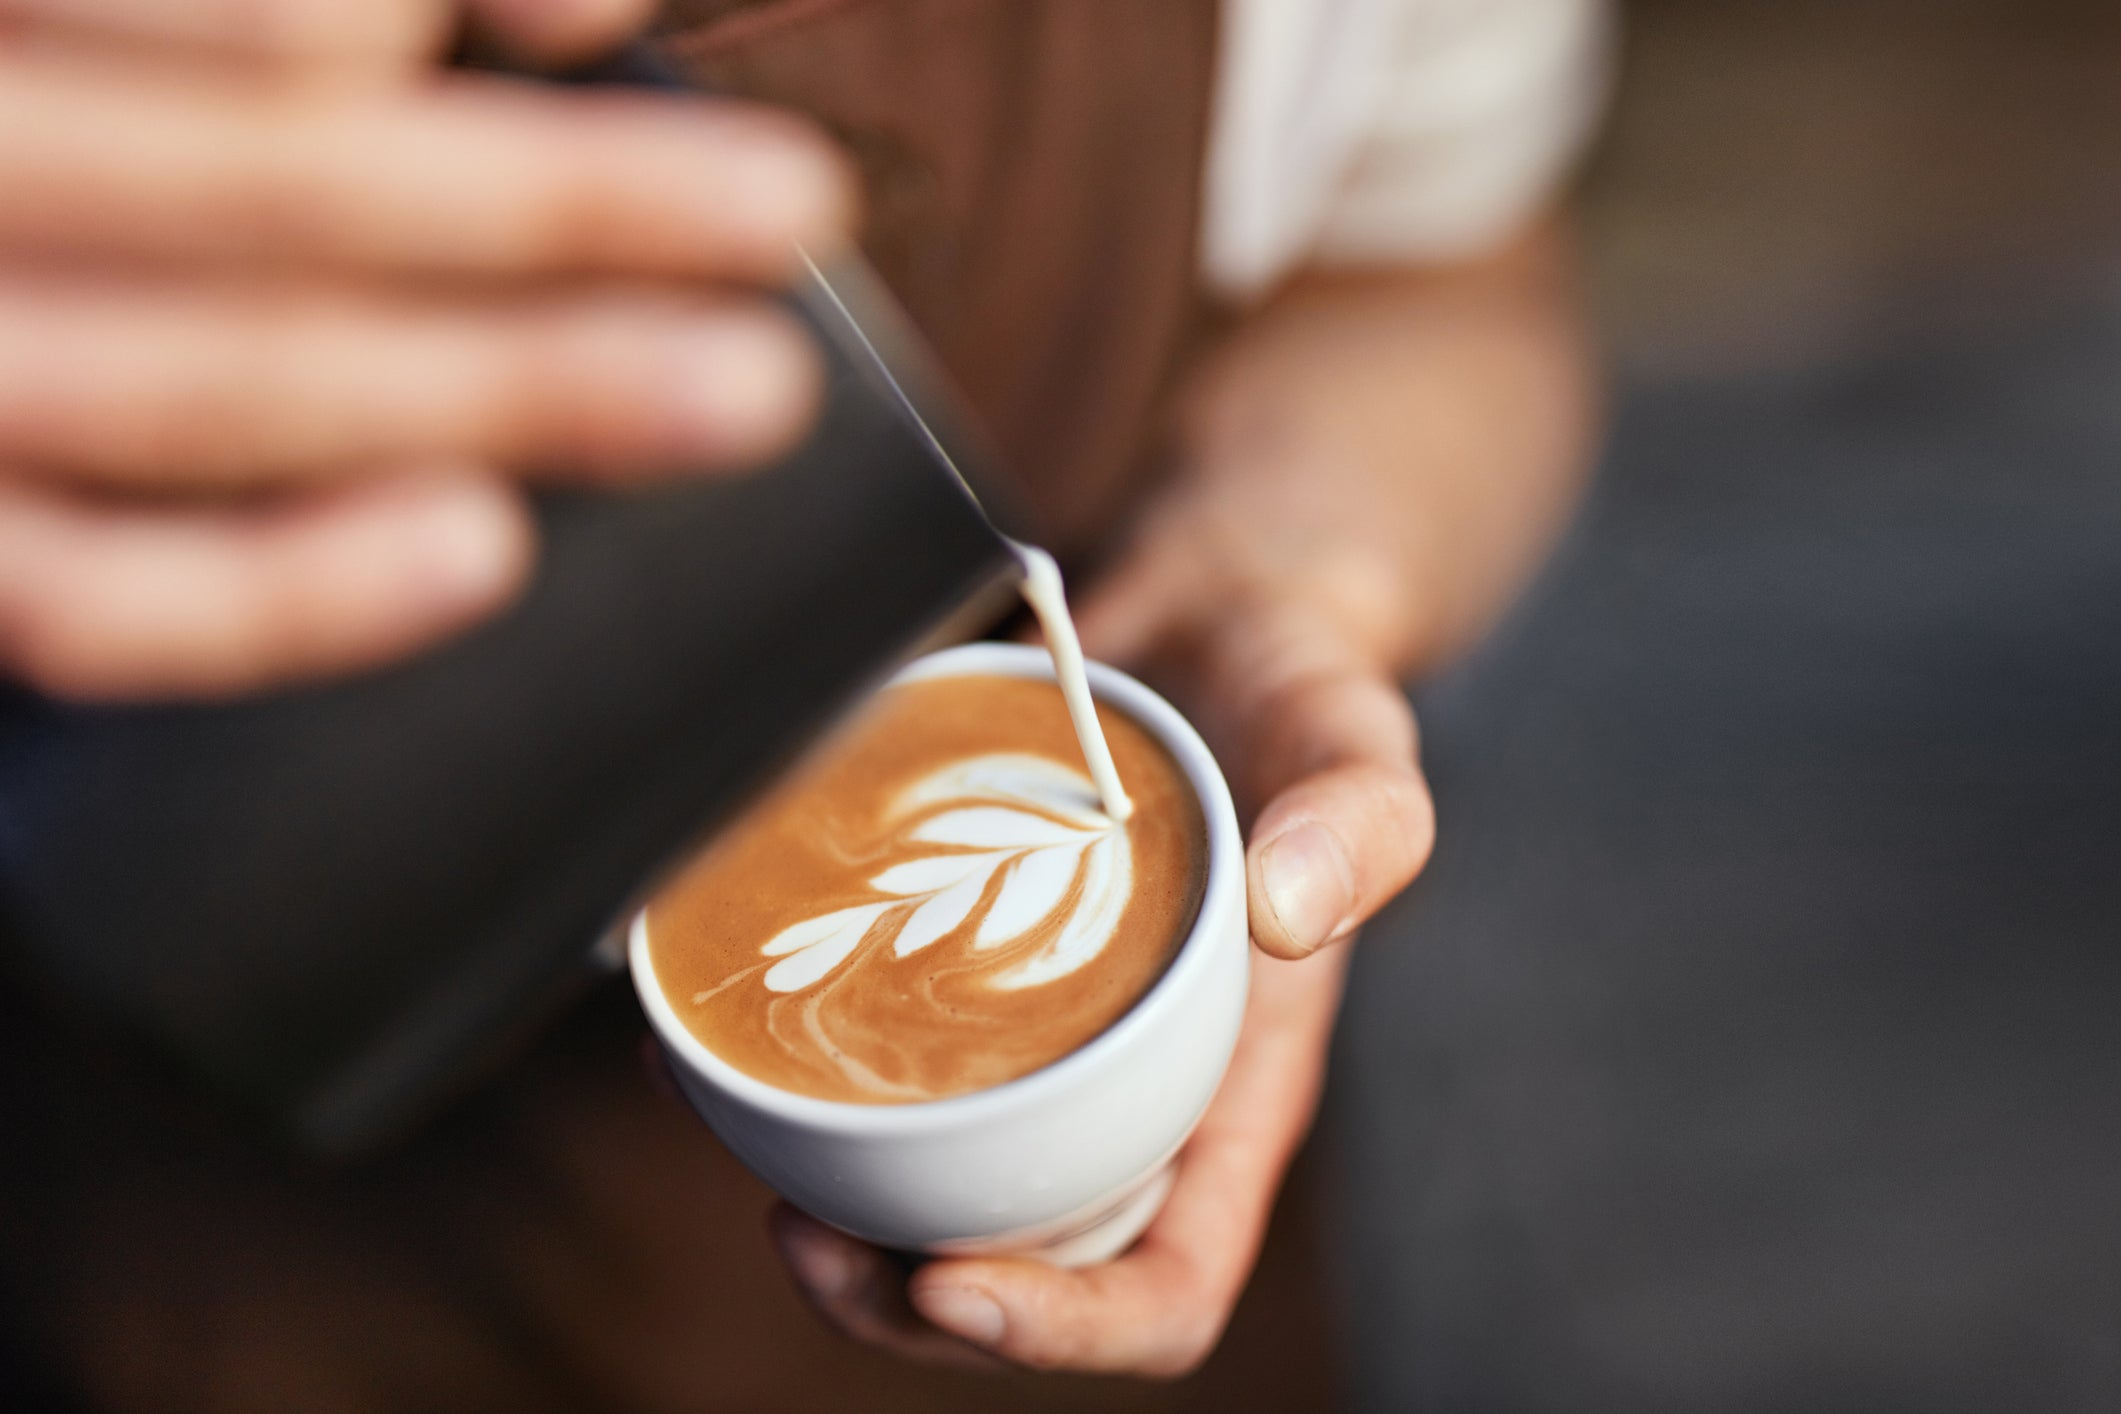 Luckin Coffee Reveals Findings of Its Internal Fraud Investigation | The Motley Fool